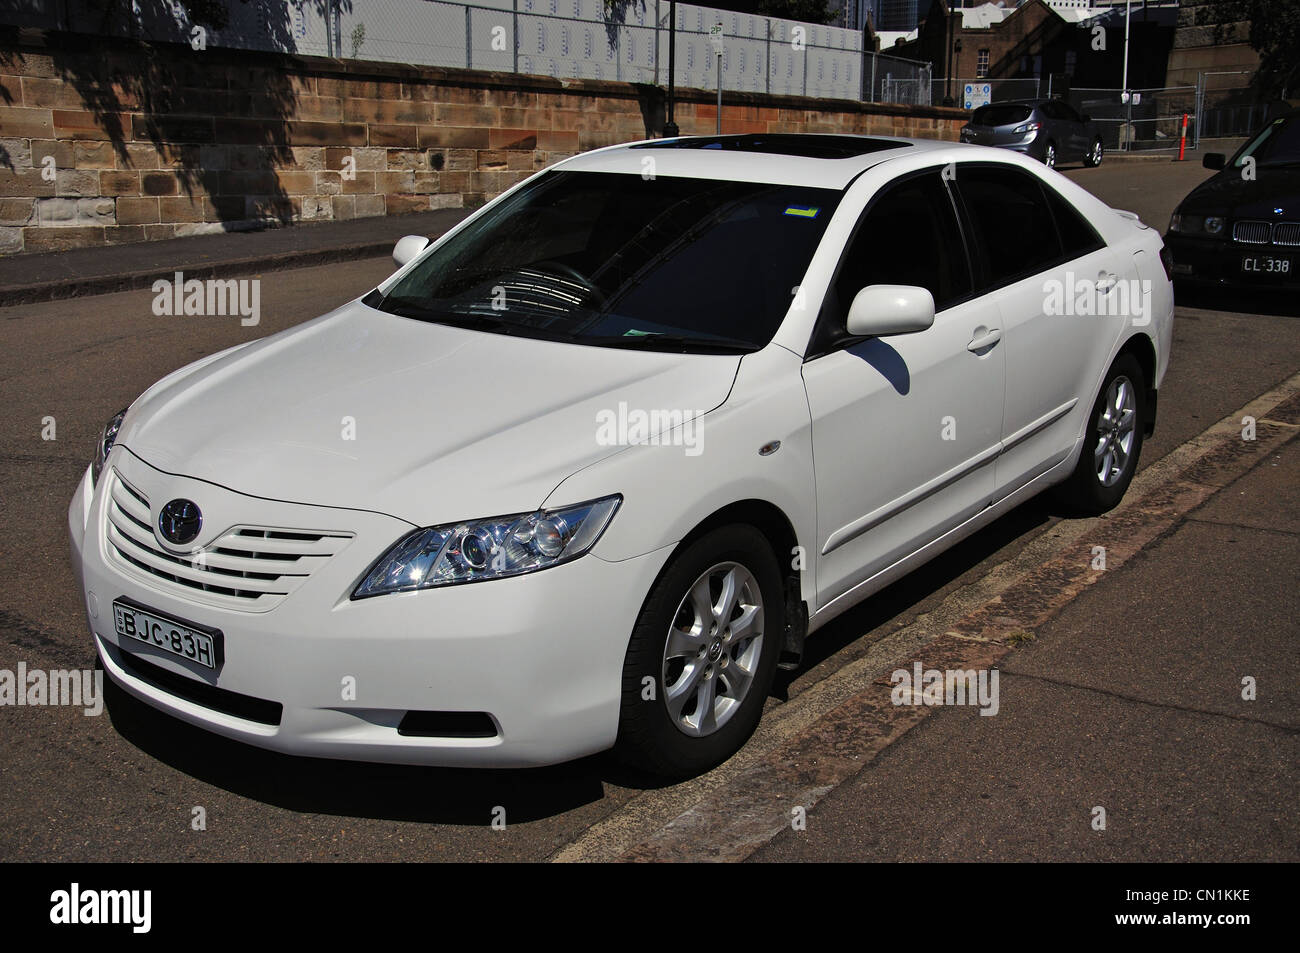 Toyota White Car Stock Photos Images Alamy Camry With Bbs Rims Parked In The Rocks Sydney Harbour New South Wales